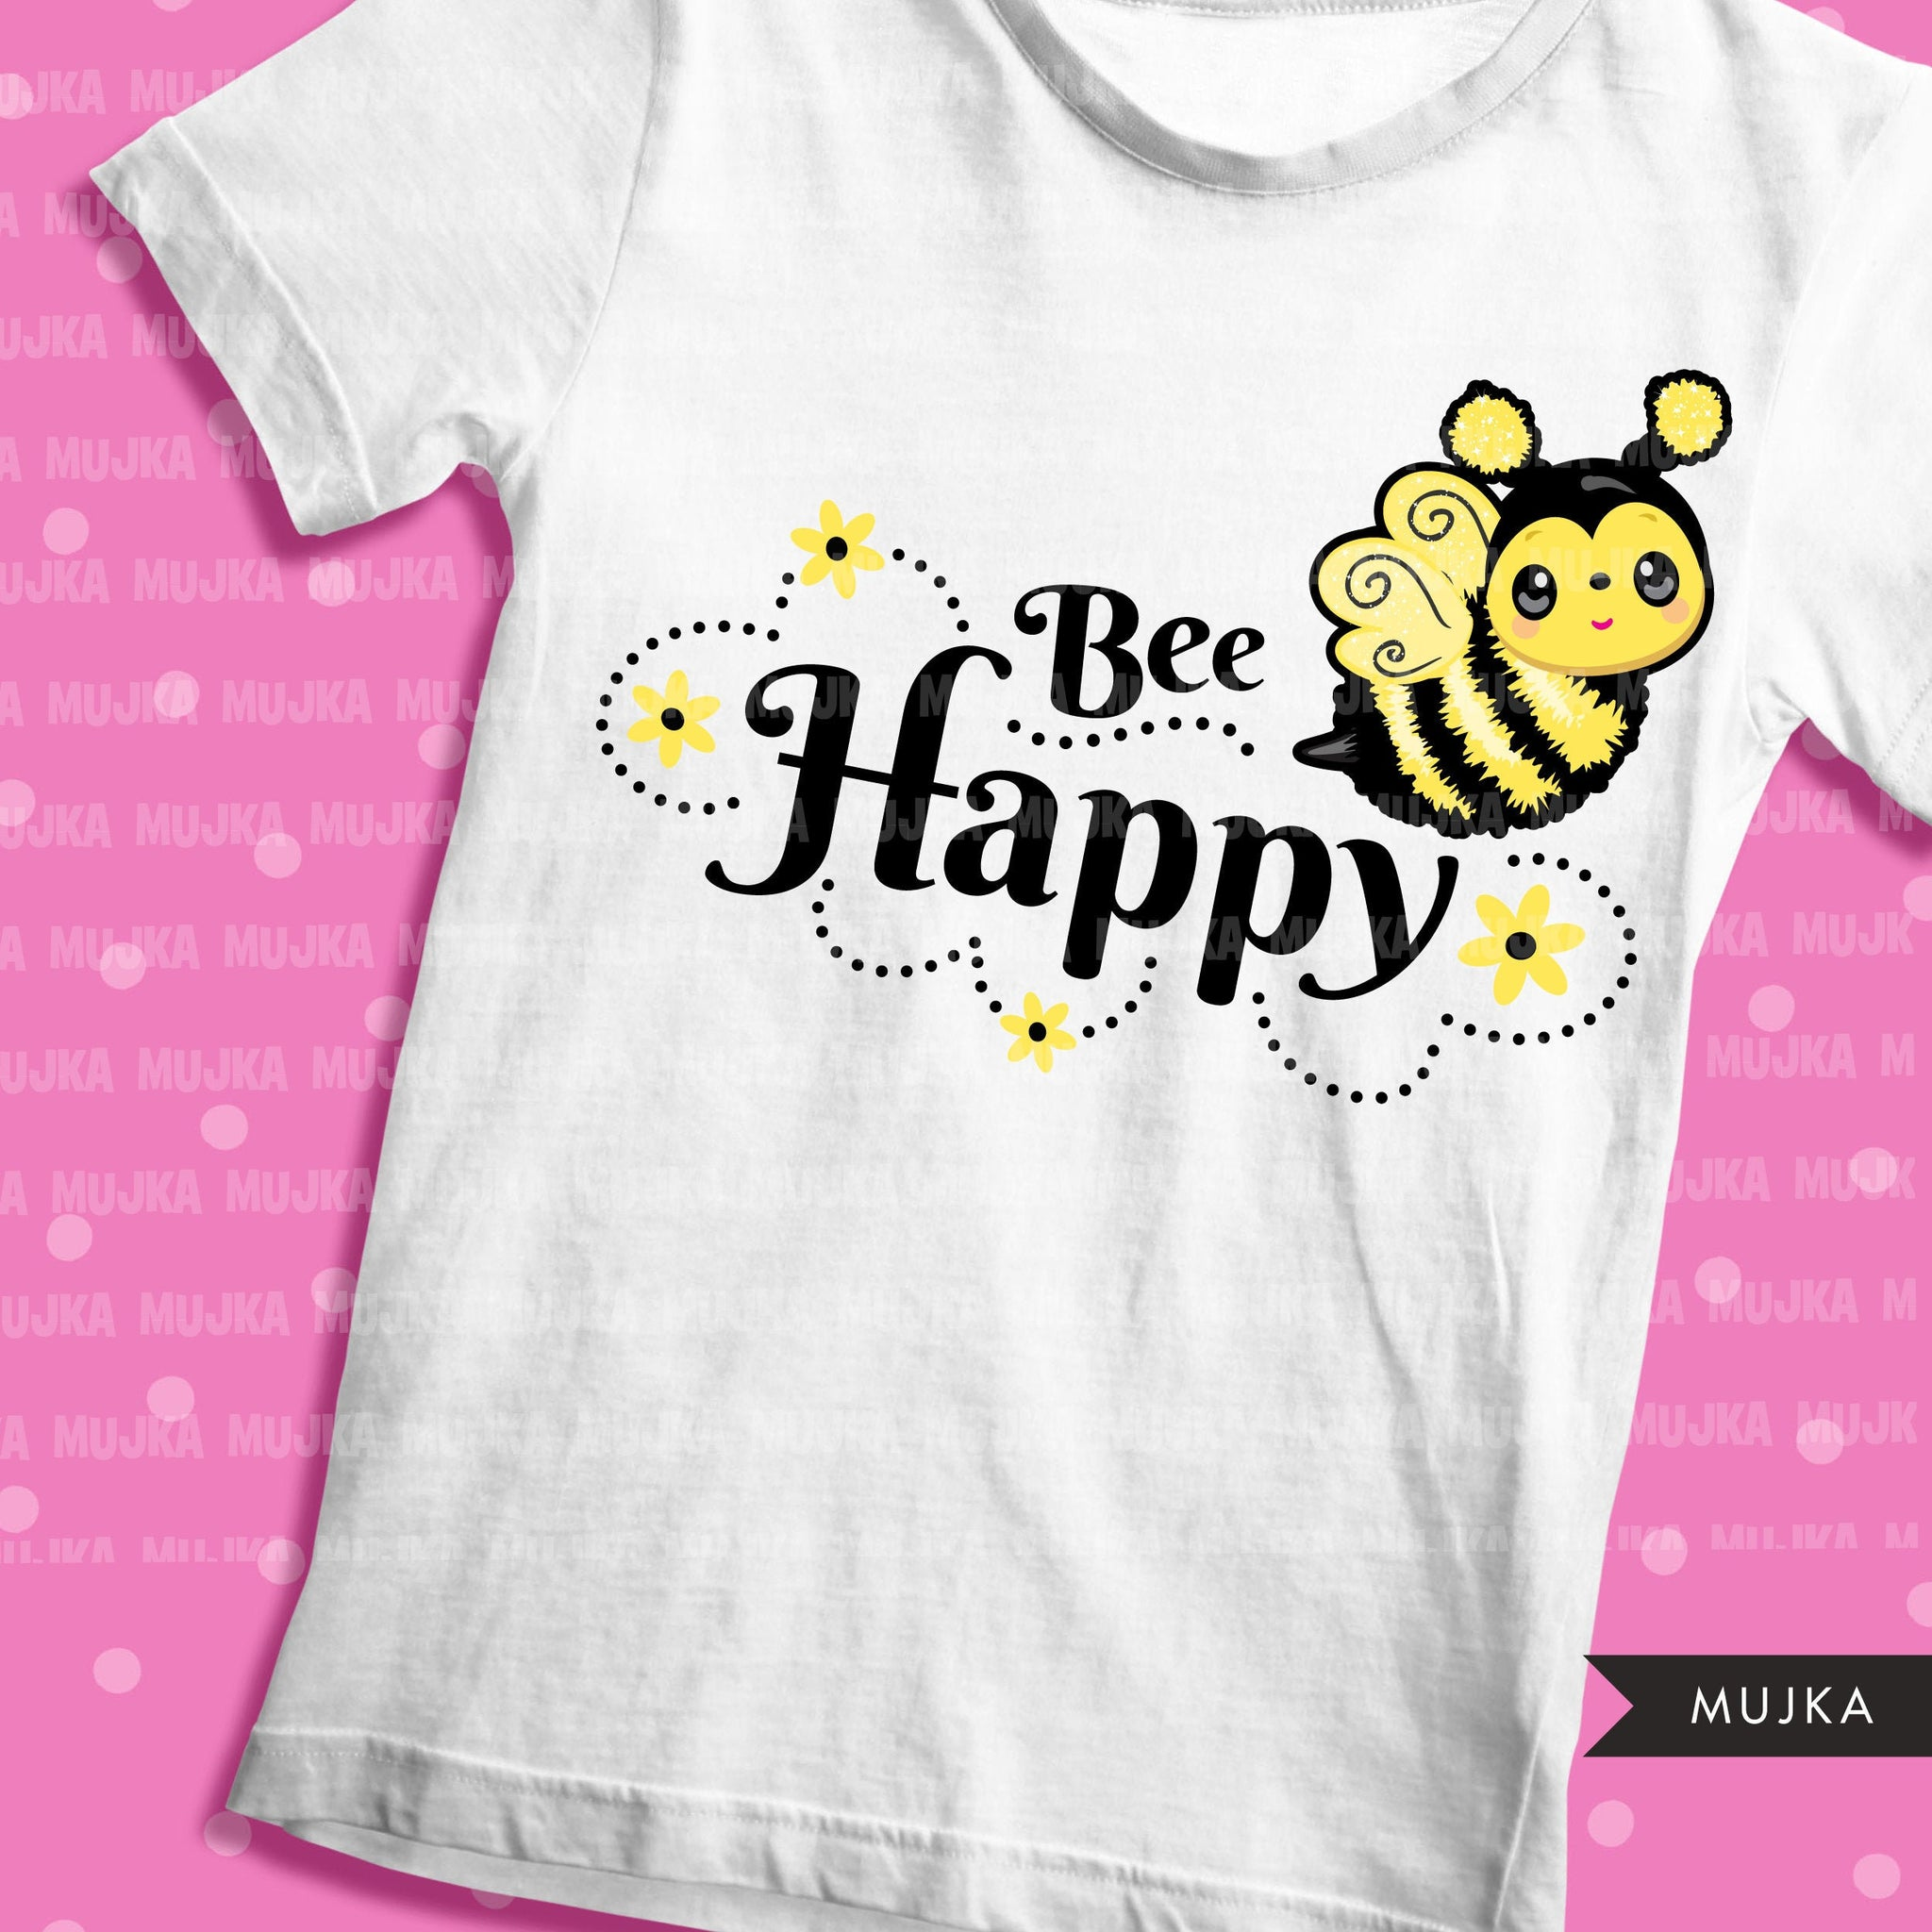 Bee Happy clipart, Bee happy sublimation designs digital download, Easter spring shirt, Bee Shirt Png, PNG files for cricut downloads